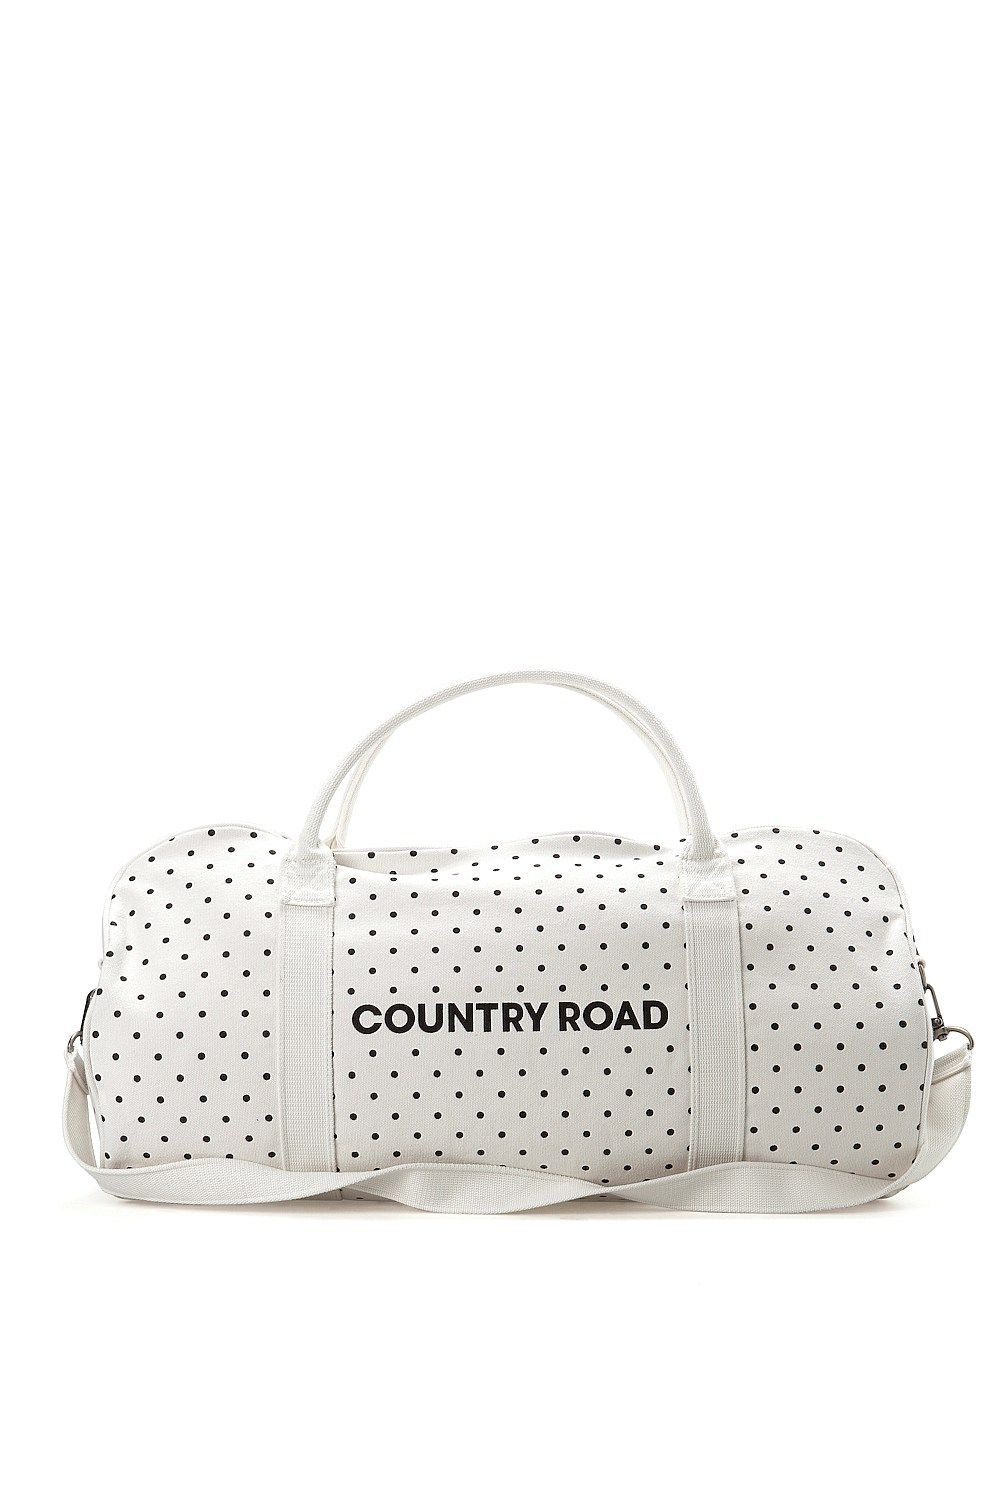 Country Road - Women s Tote Store Online - Polka Dot Tote  393968c9d3ee6